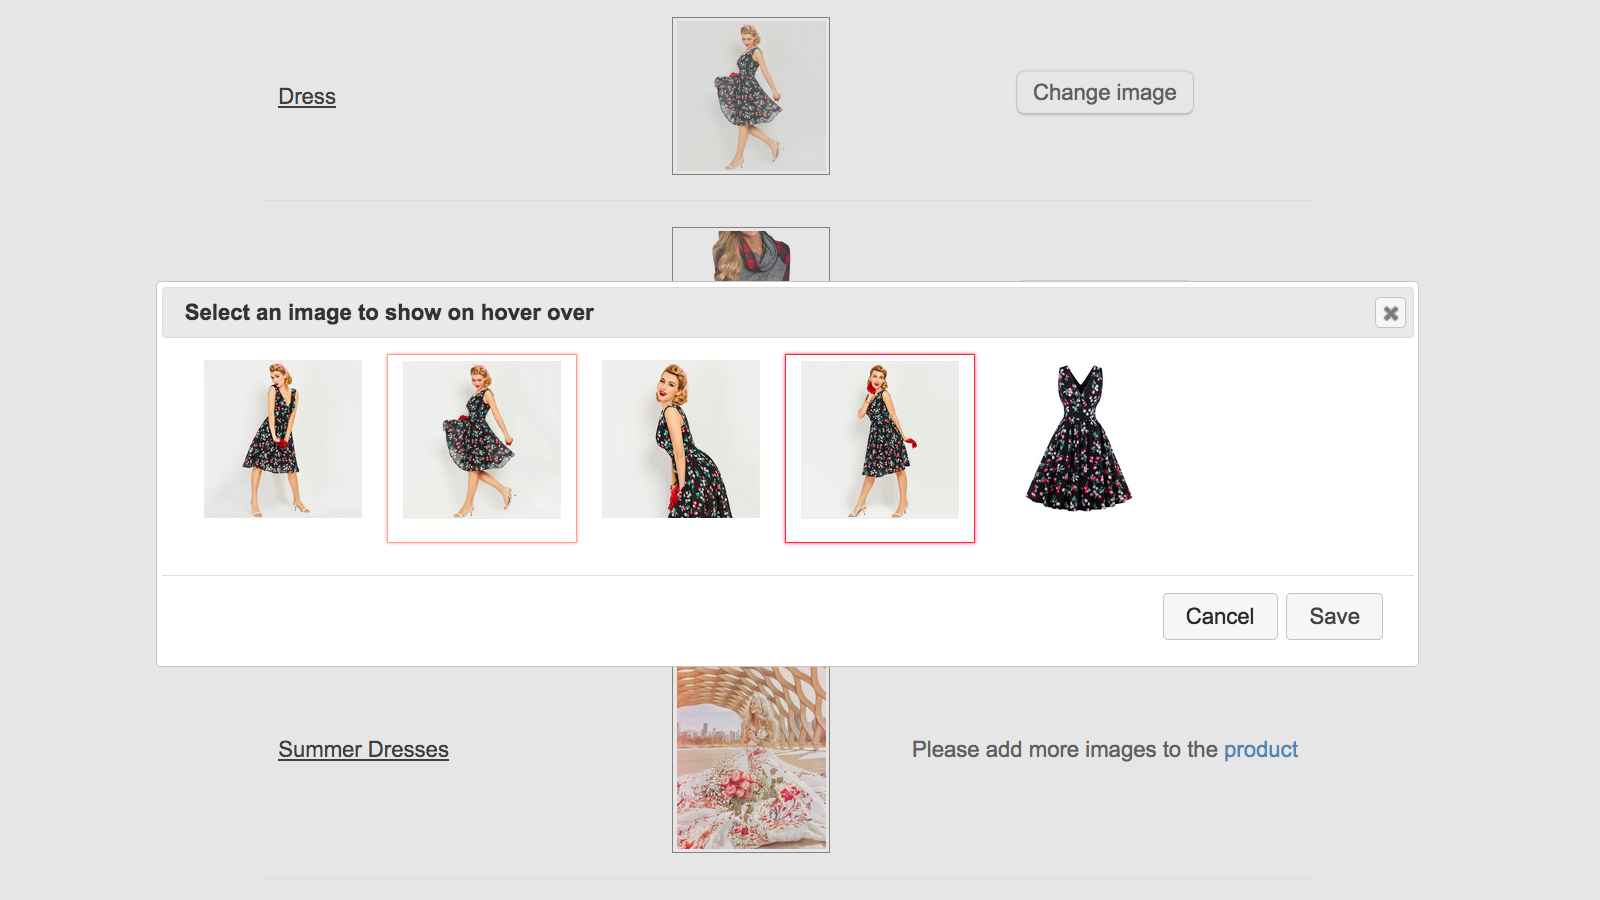 Control Panel: Selecting an image for hover effect